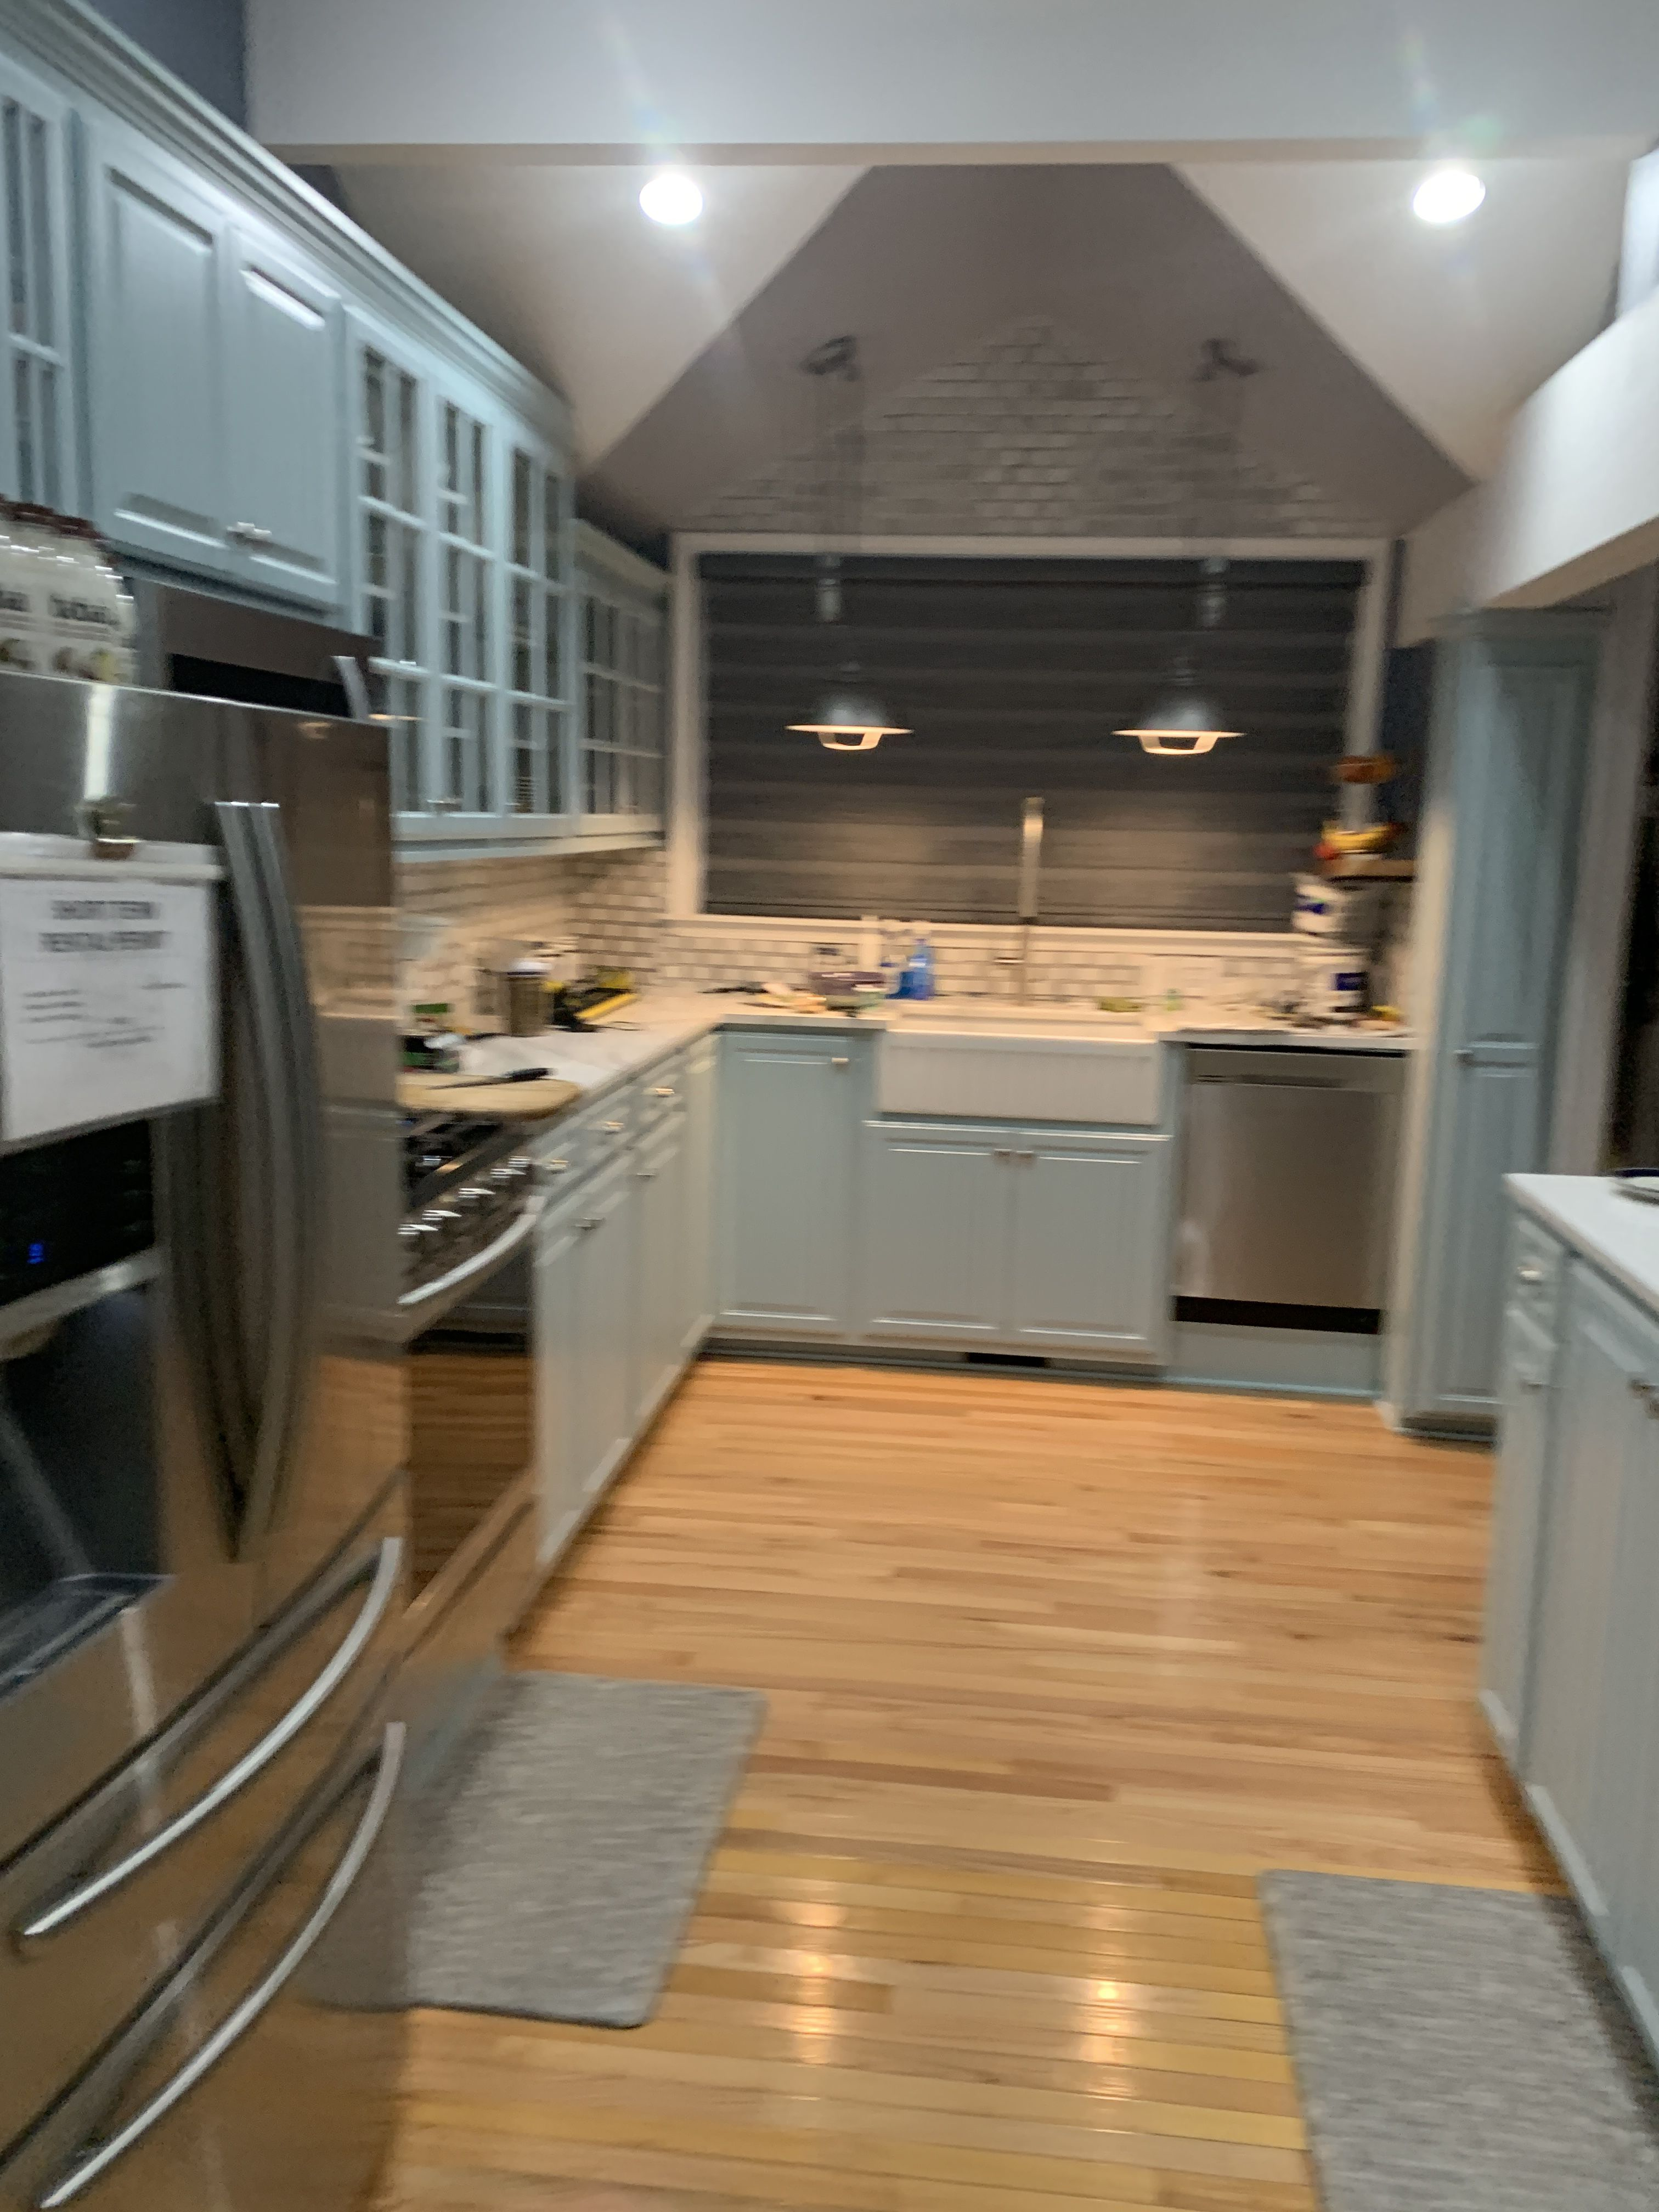 42 Inch High Cabinets For People That Are Over 6 Foot Tall Nice Kitchen Cabinets Cabinet Home Decor